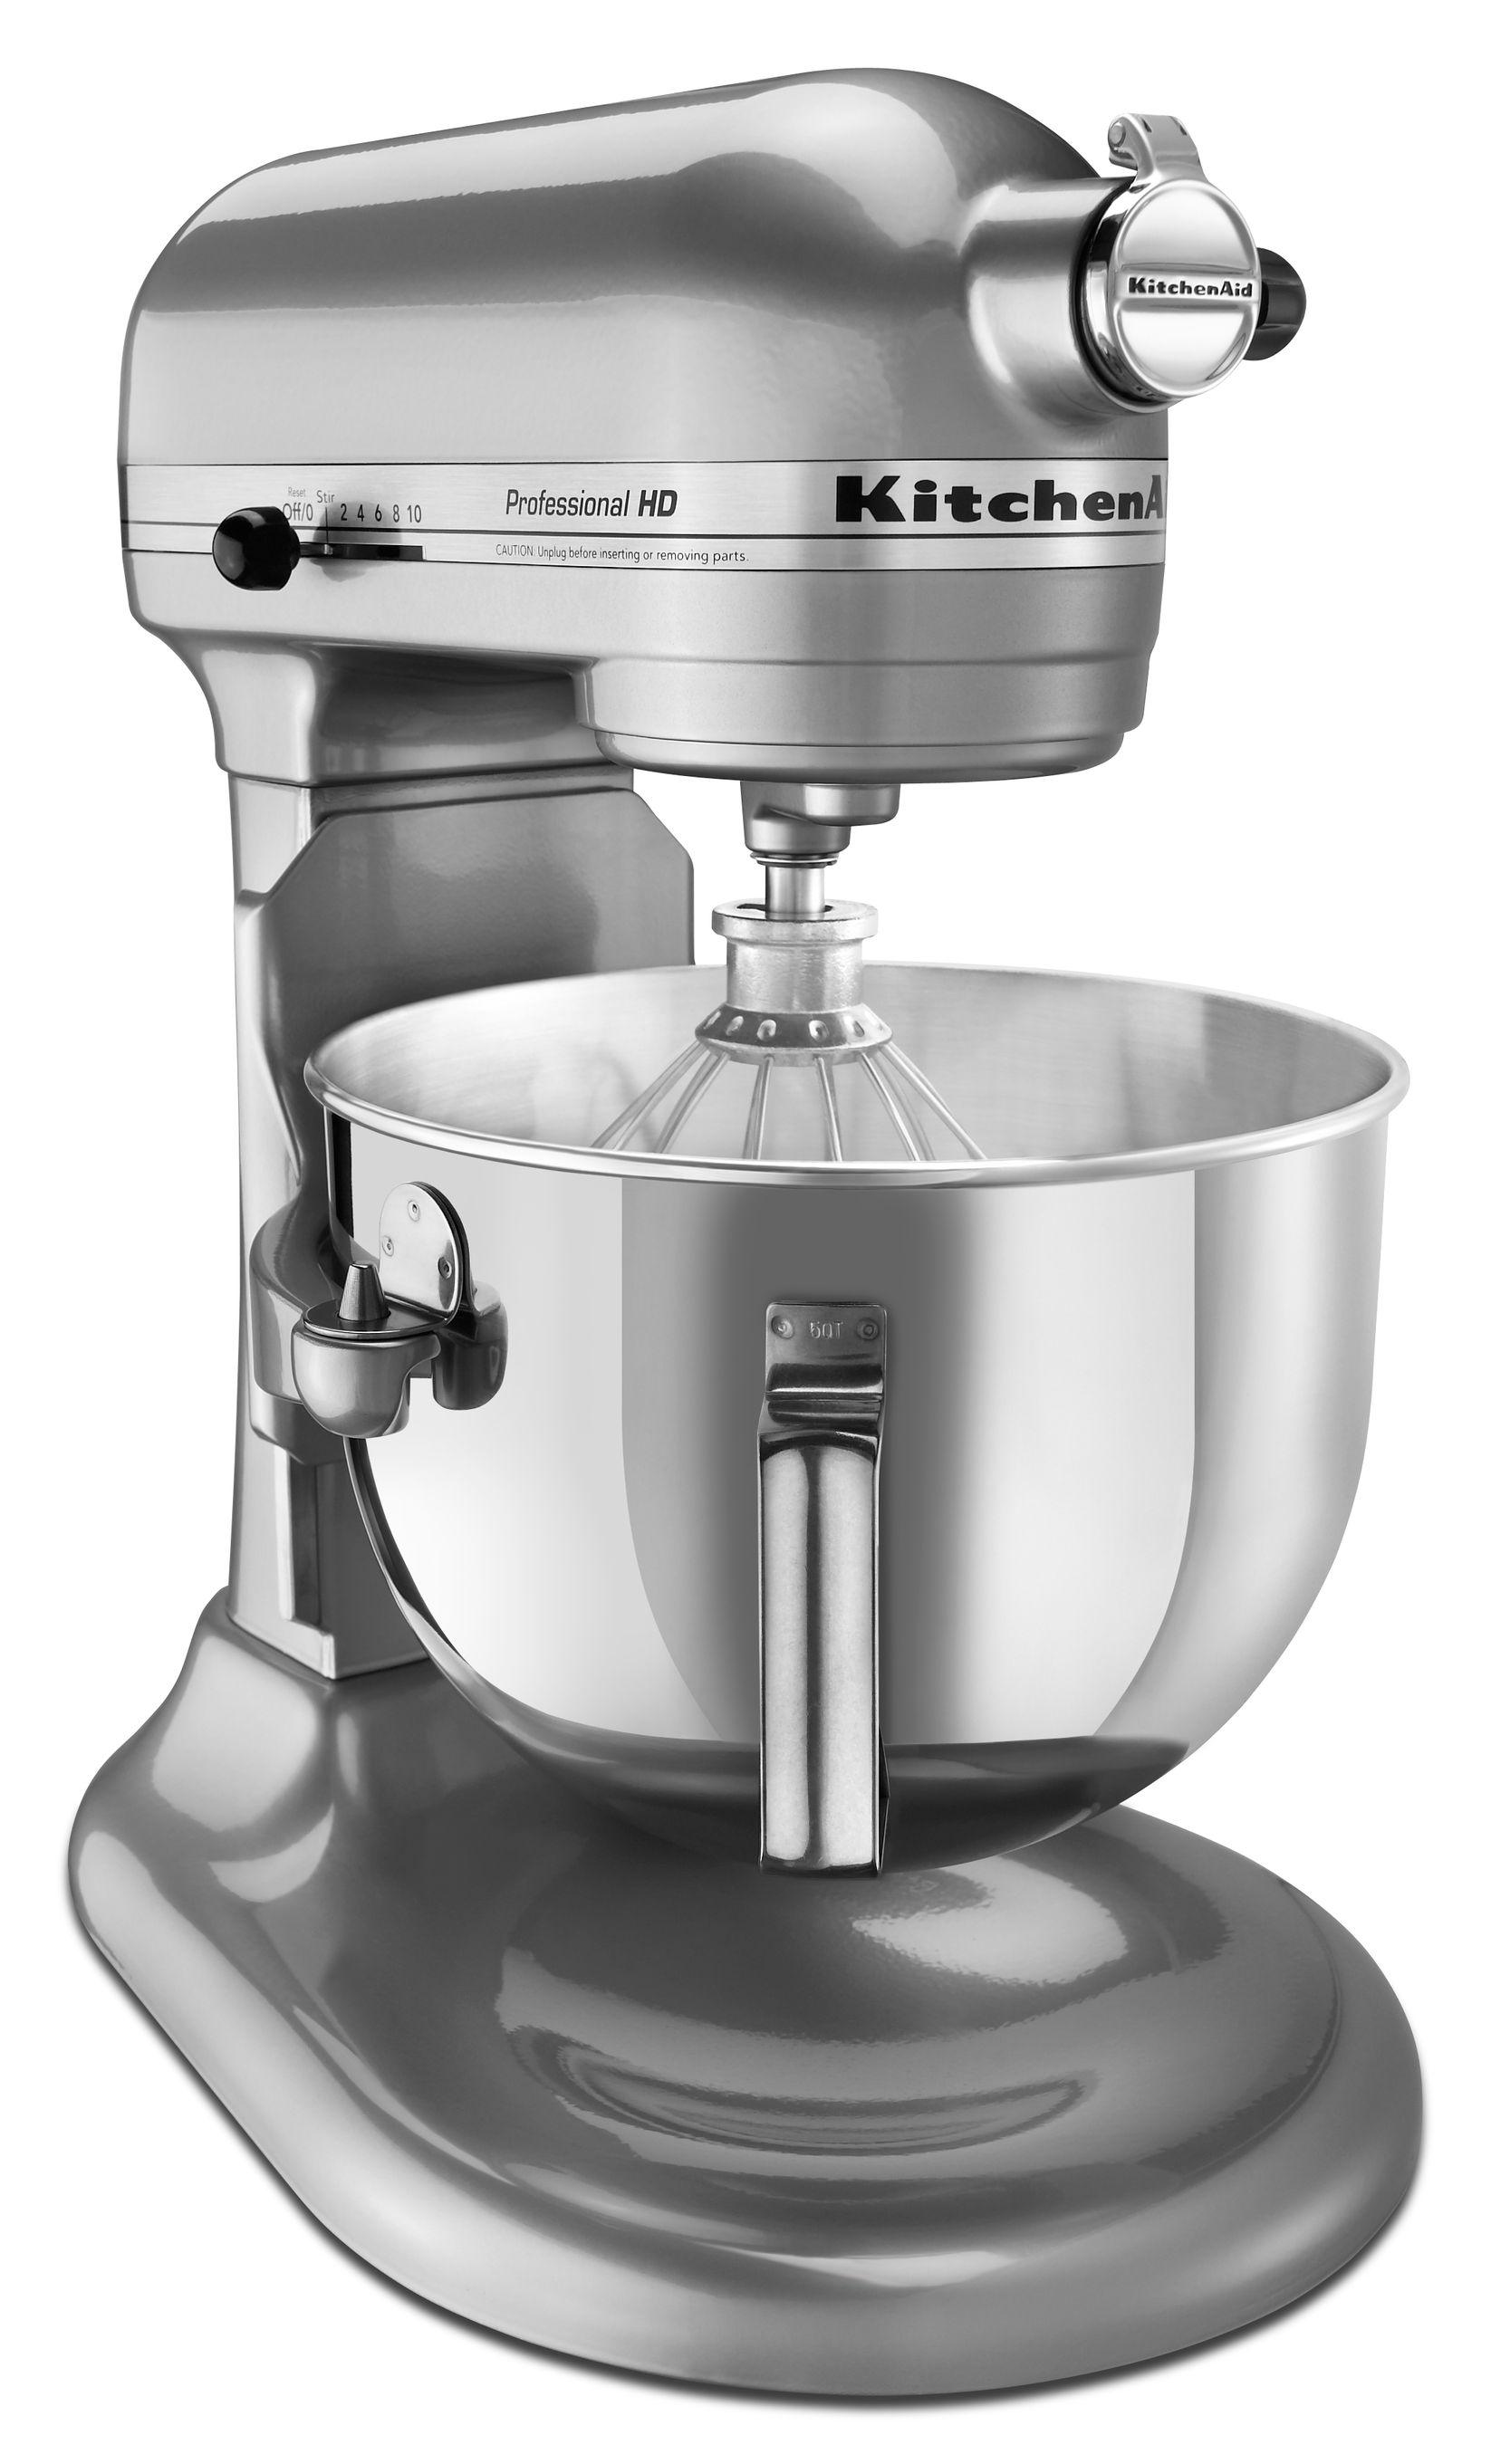 KitchenAid-Refurbished-Professional-HD-Series-Bowl-Lift-Stand-Mixer-RKG25H0X thumbnail 11